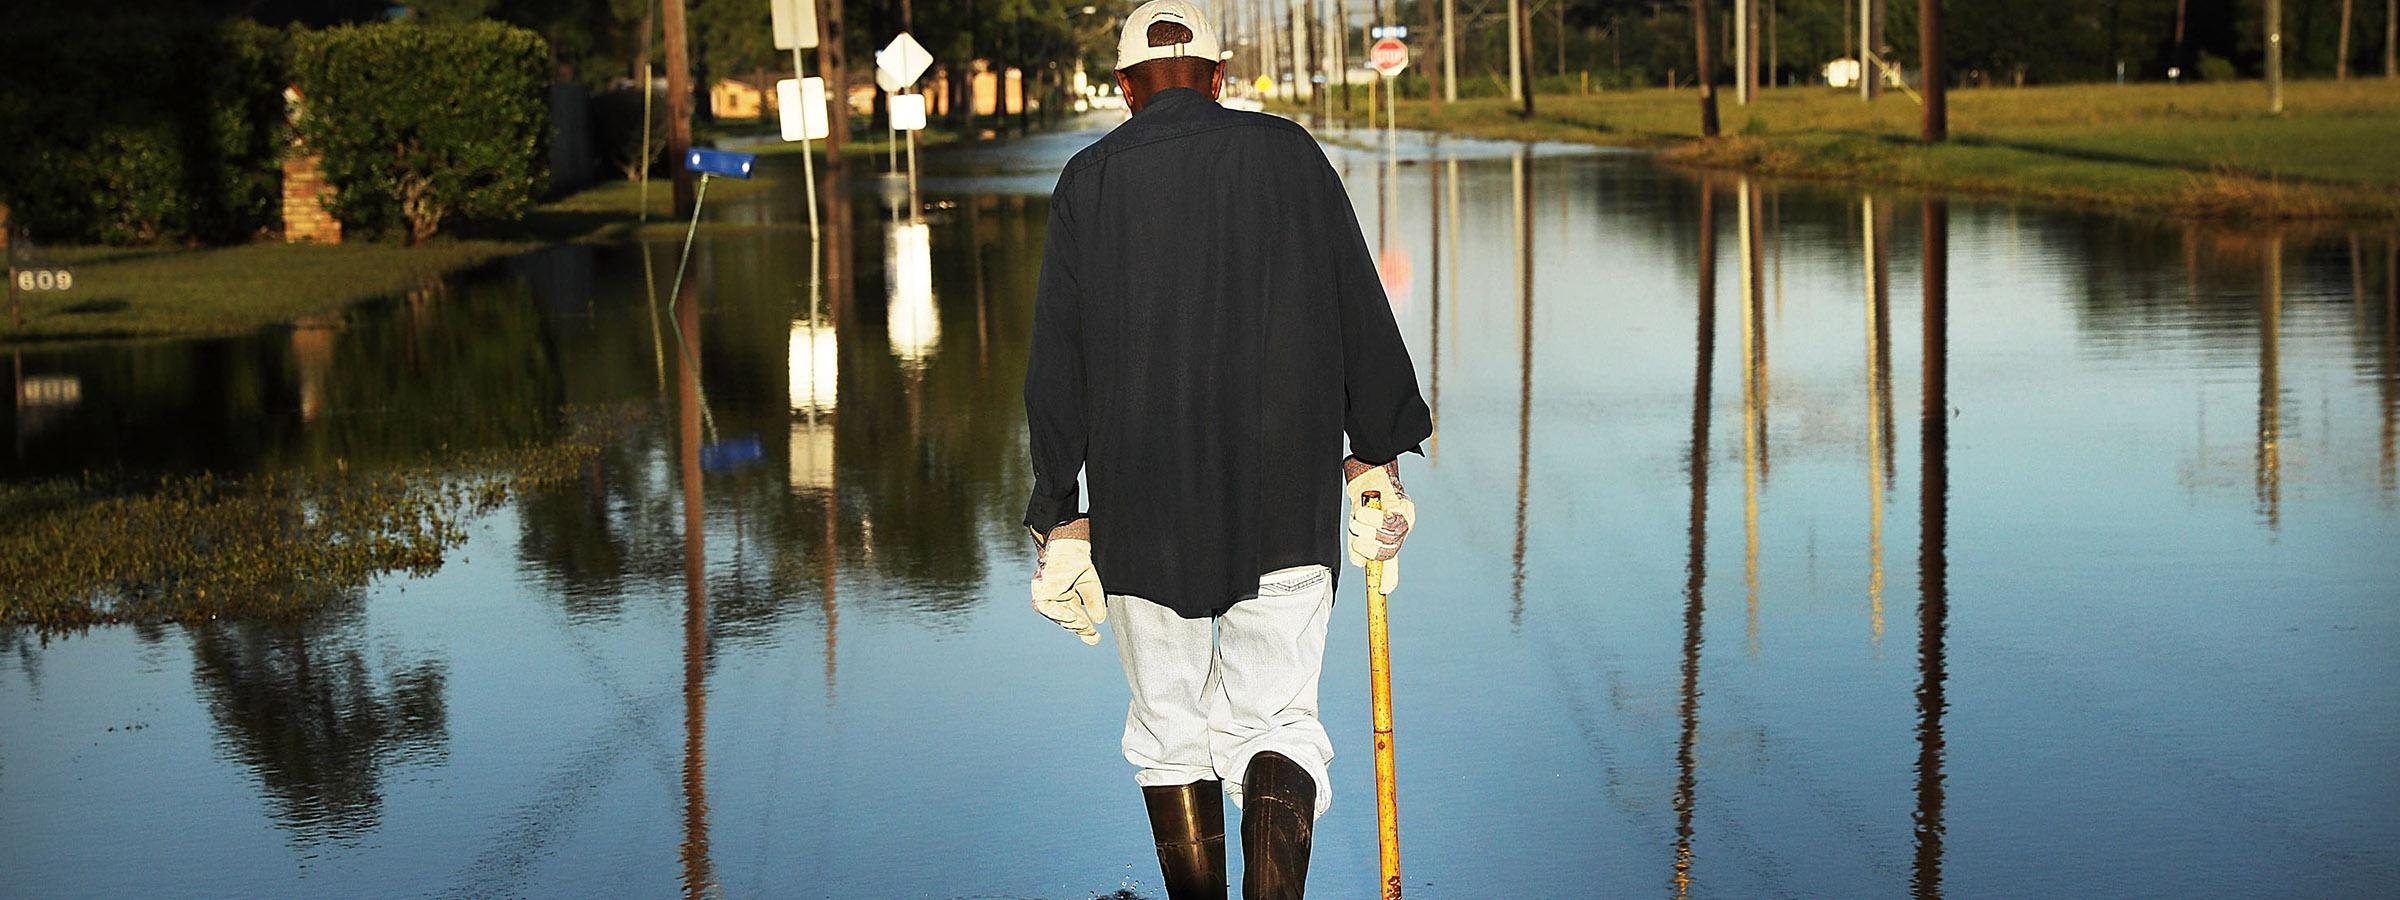 Man walking on flooded streets after a hurricane.